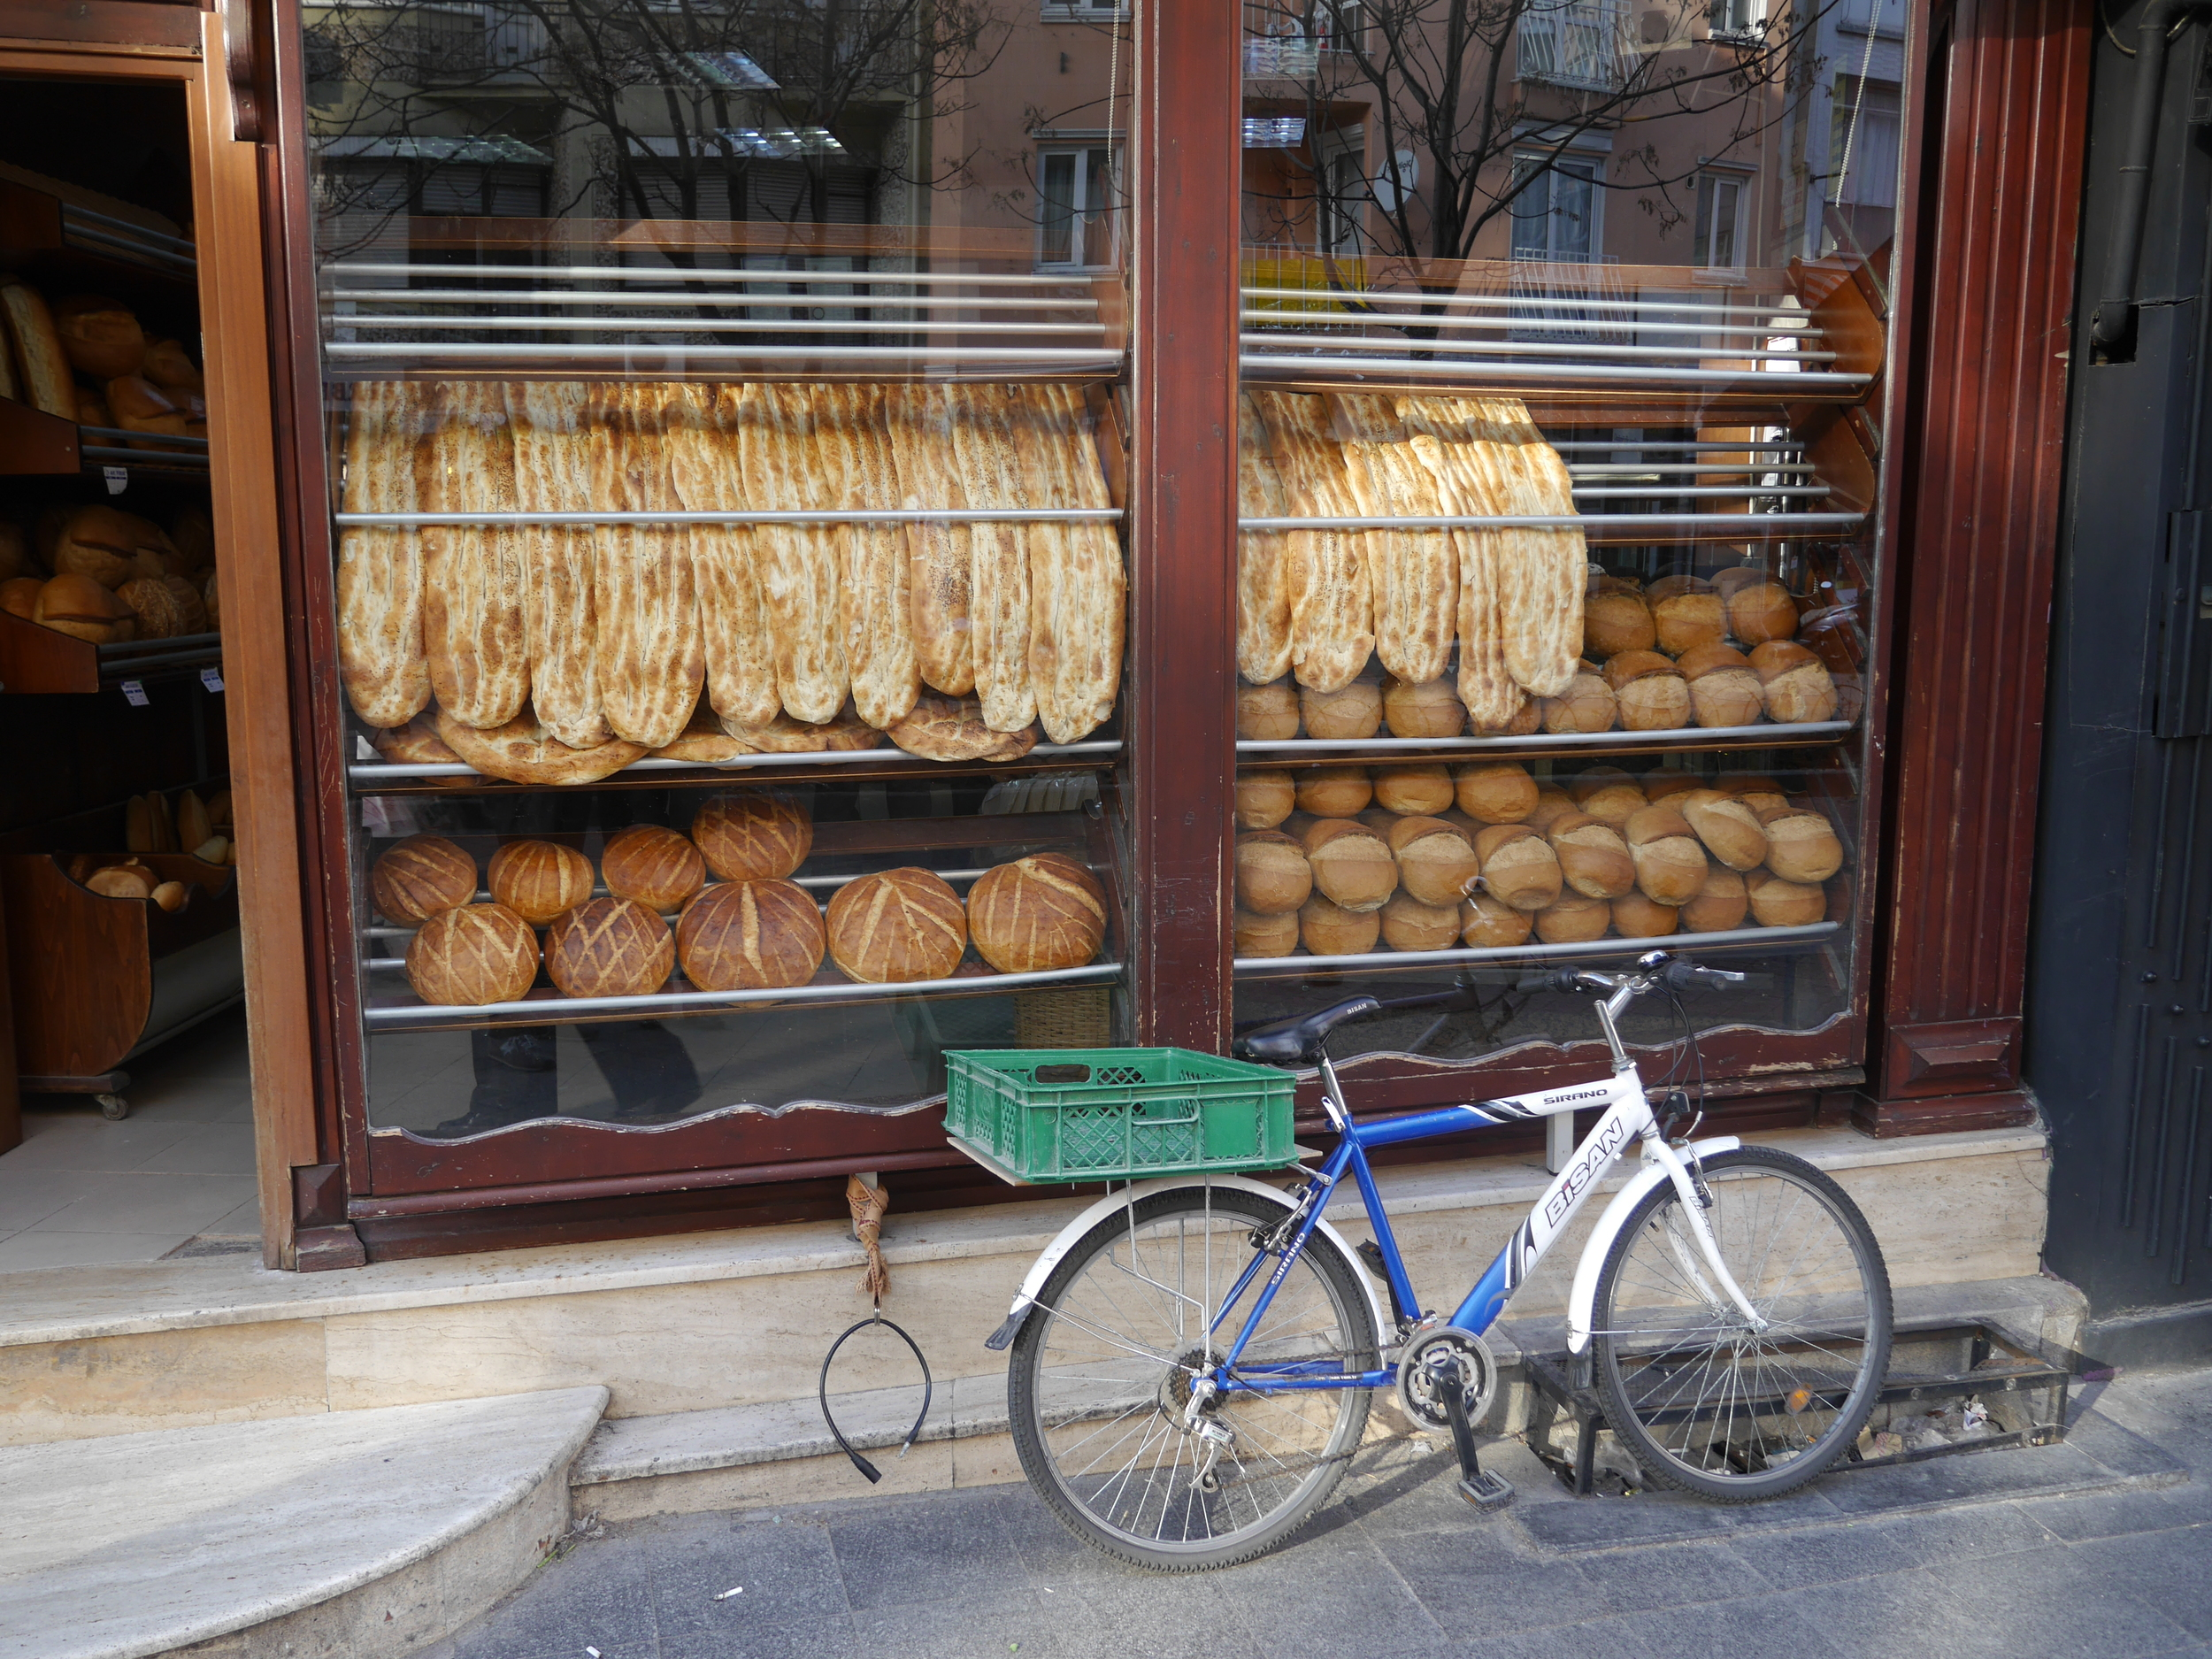 A bakery with obligatory bicycle.